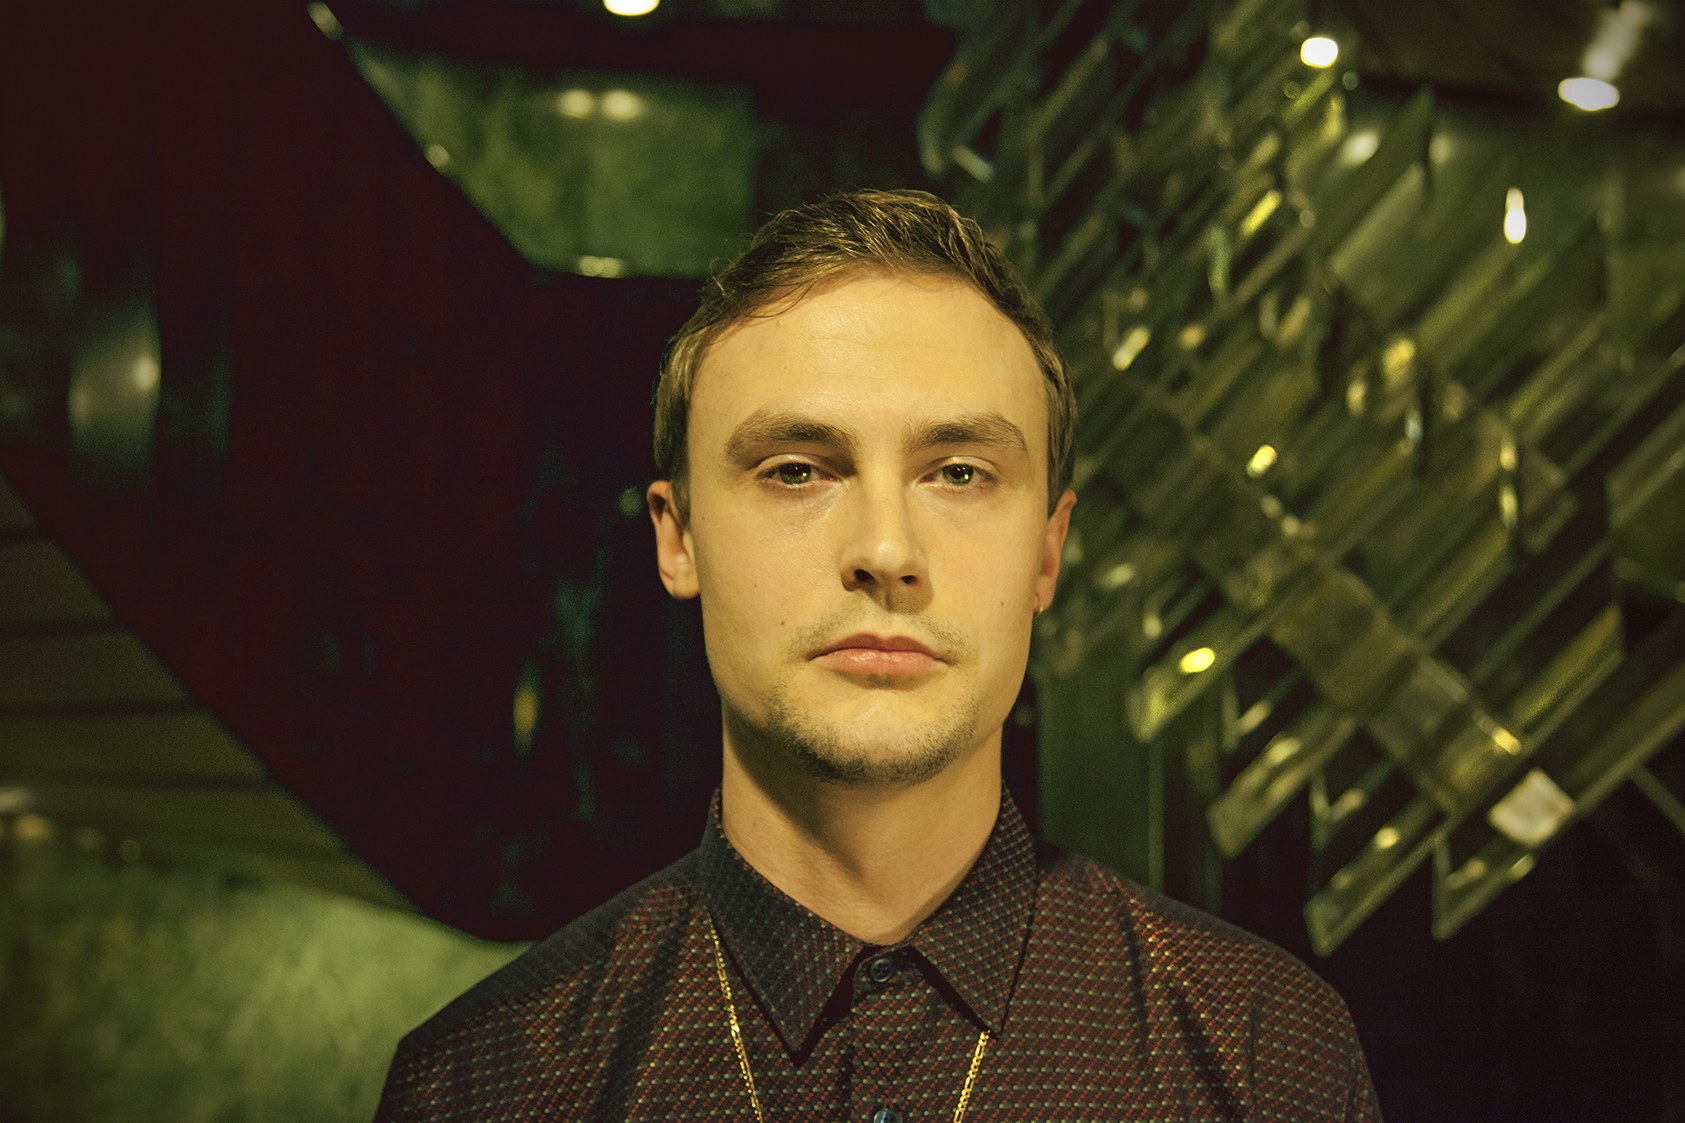 Lapalux news on Cone Magazine